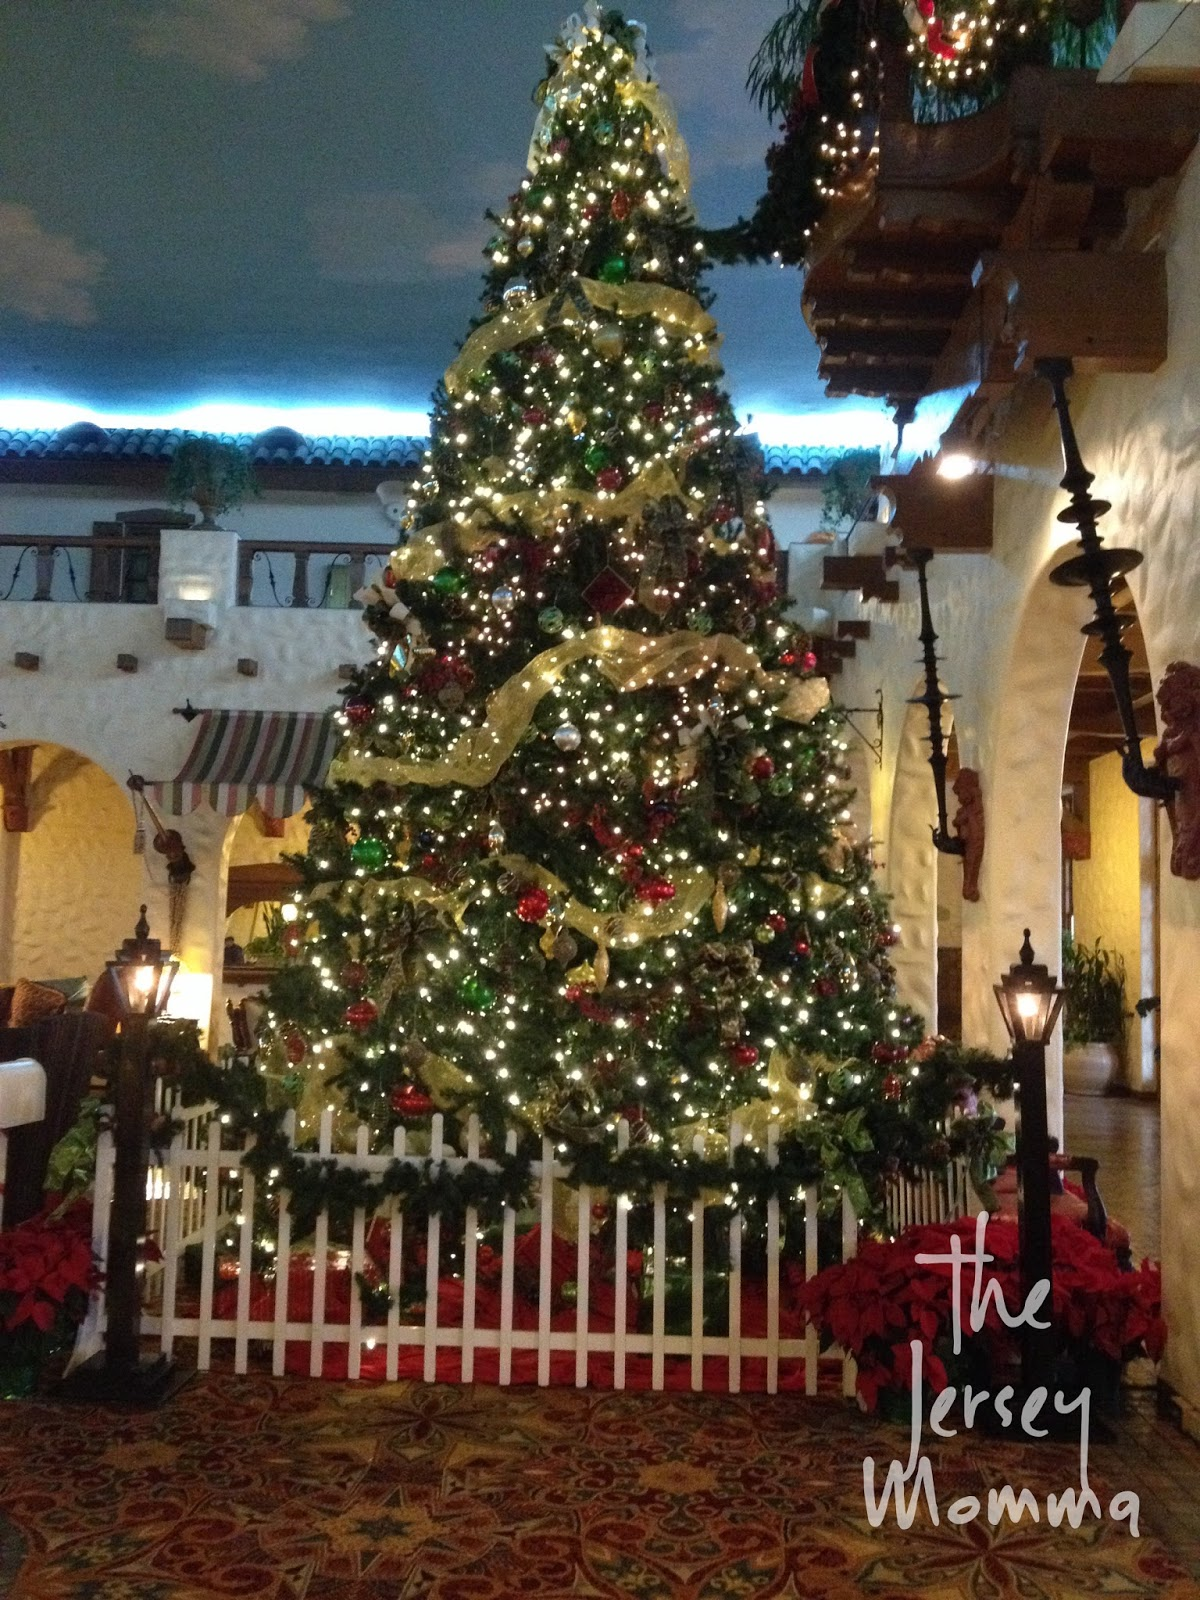 Beautiful Christmas Decorations At Christmas At The Hotel Hershey